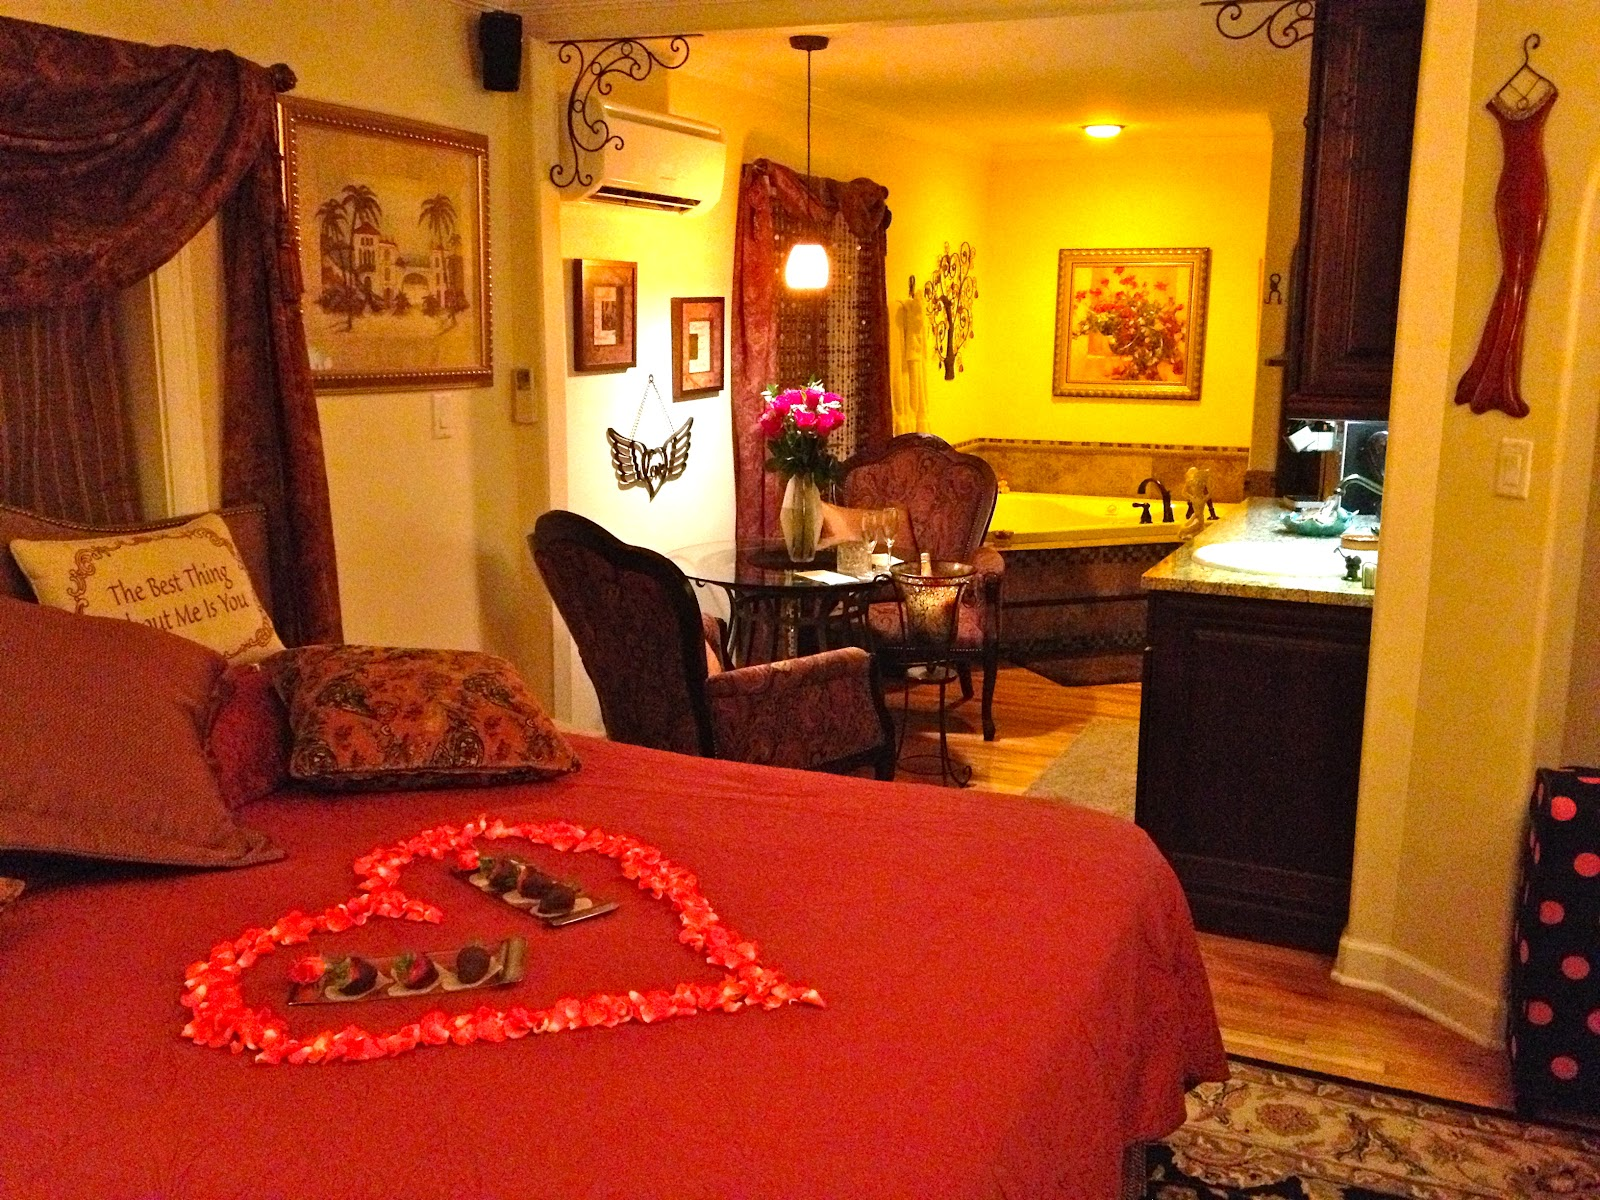 Romantic room with roses - The Graham S A New Adventureromantic Room With Roses